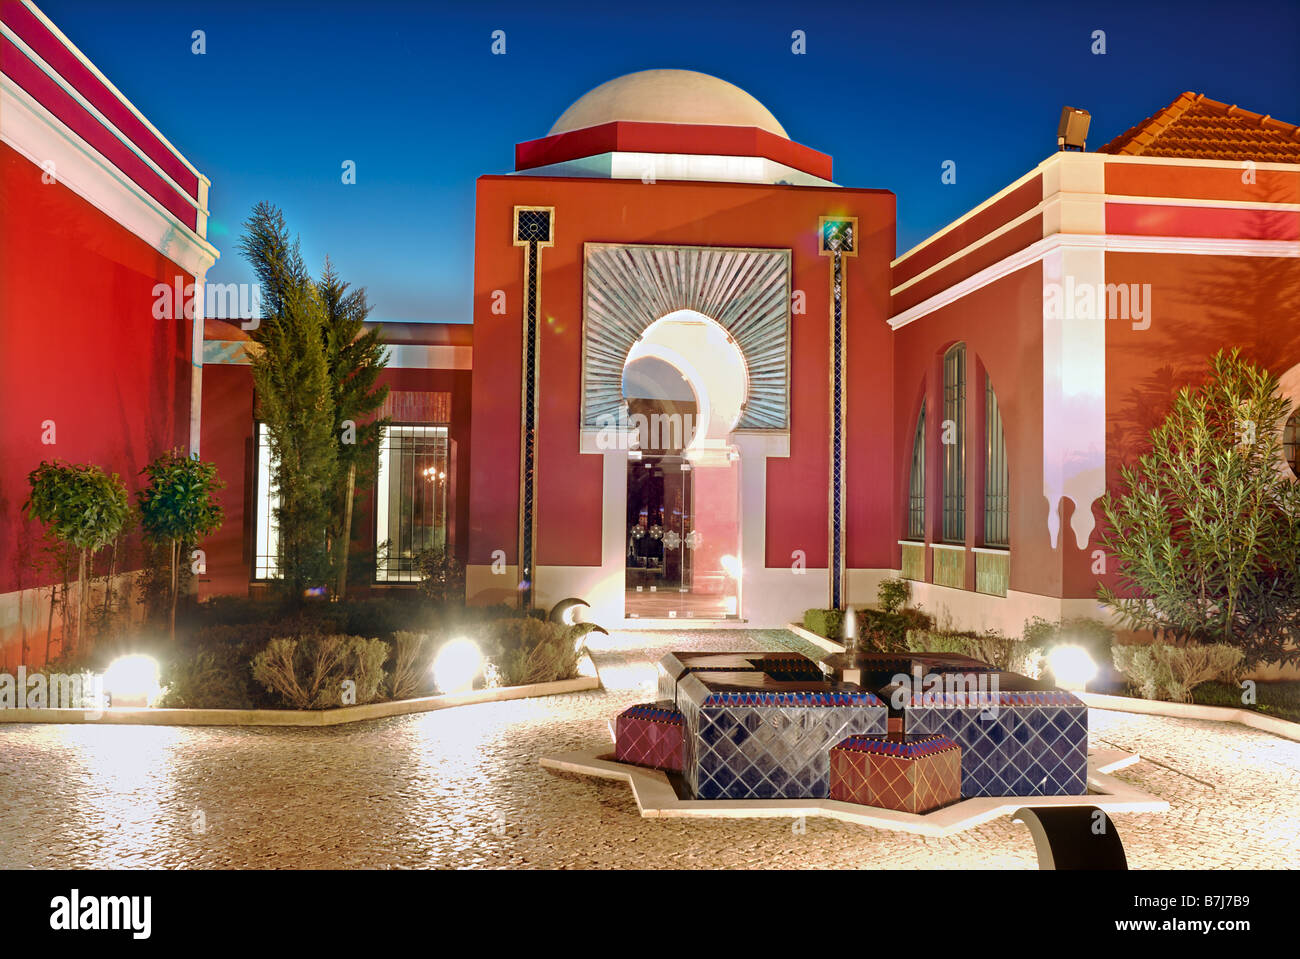 Awesome Islamic Architecture Home Design Pictures Design